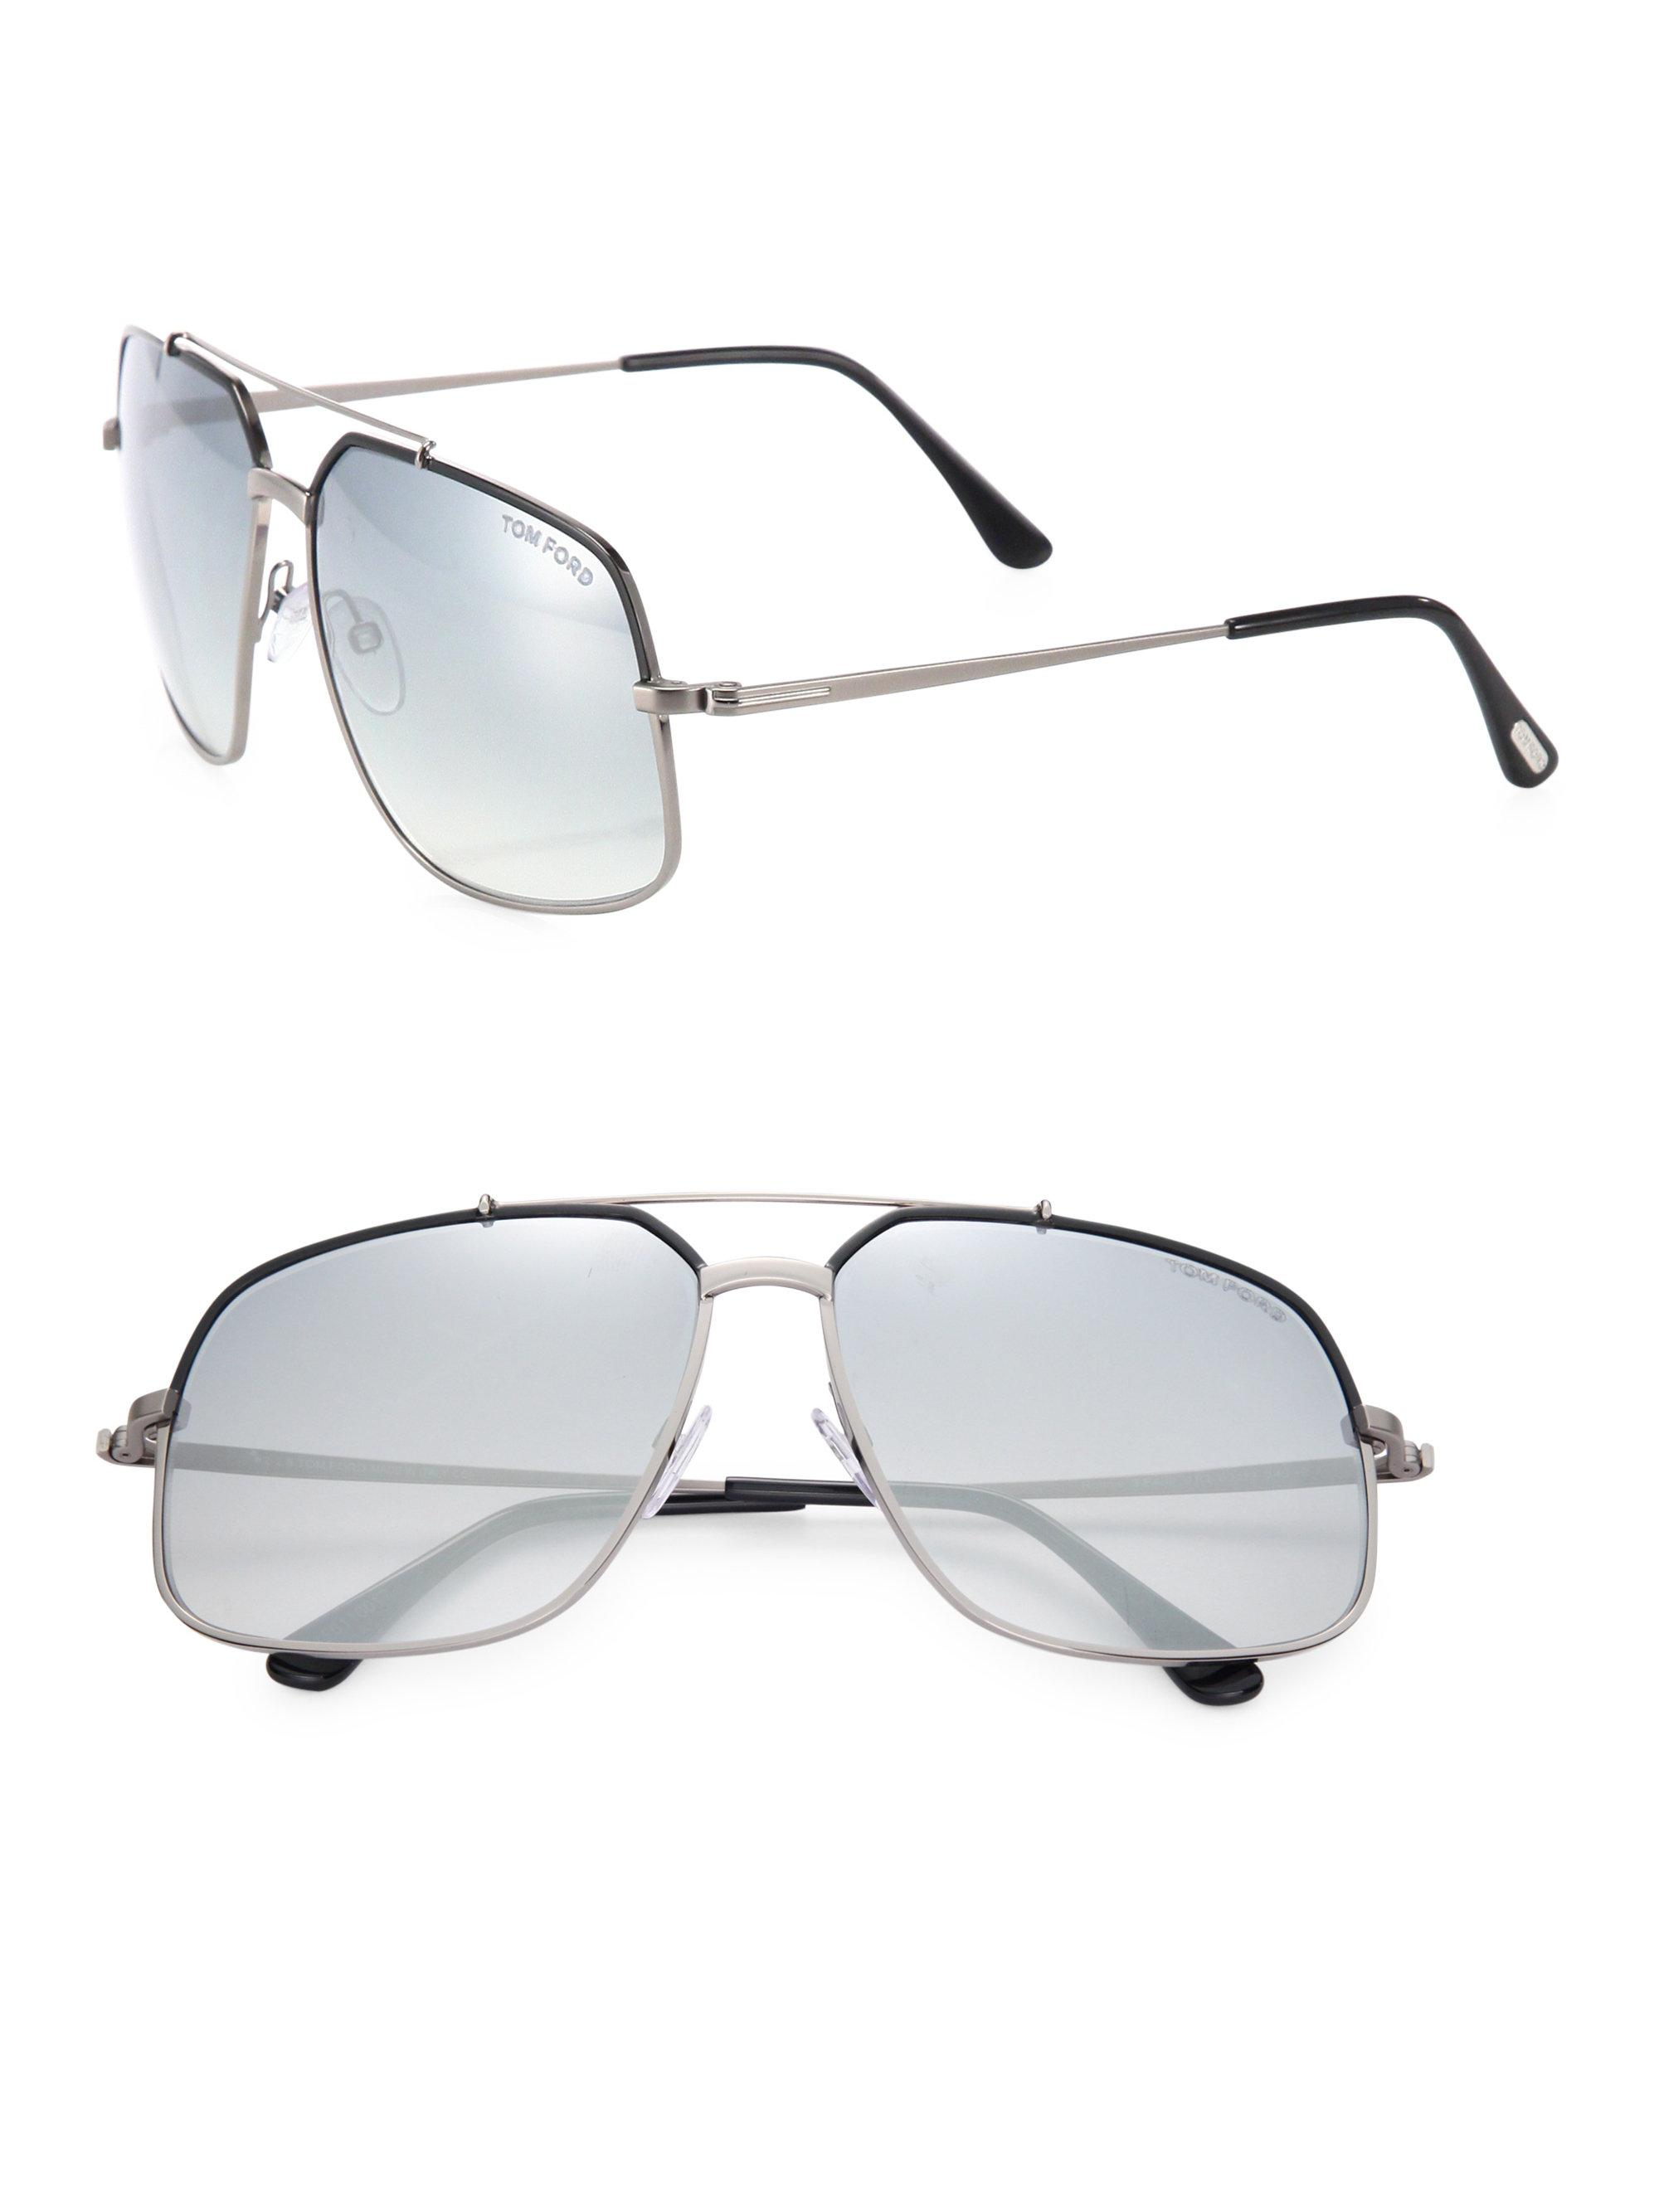 60mm For Tom Gray Metal Square Ronnie Sunglasses Ford Lyst Men In qtBzwOO